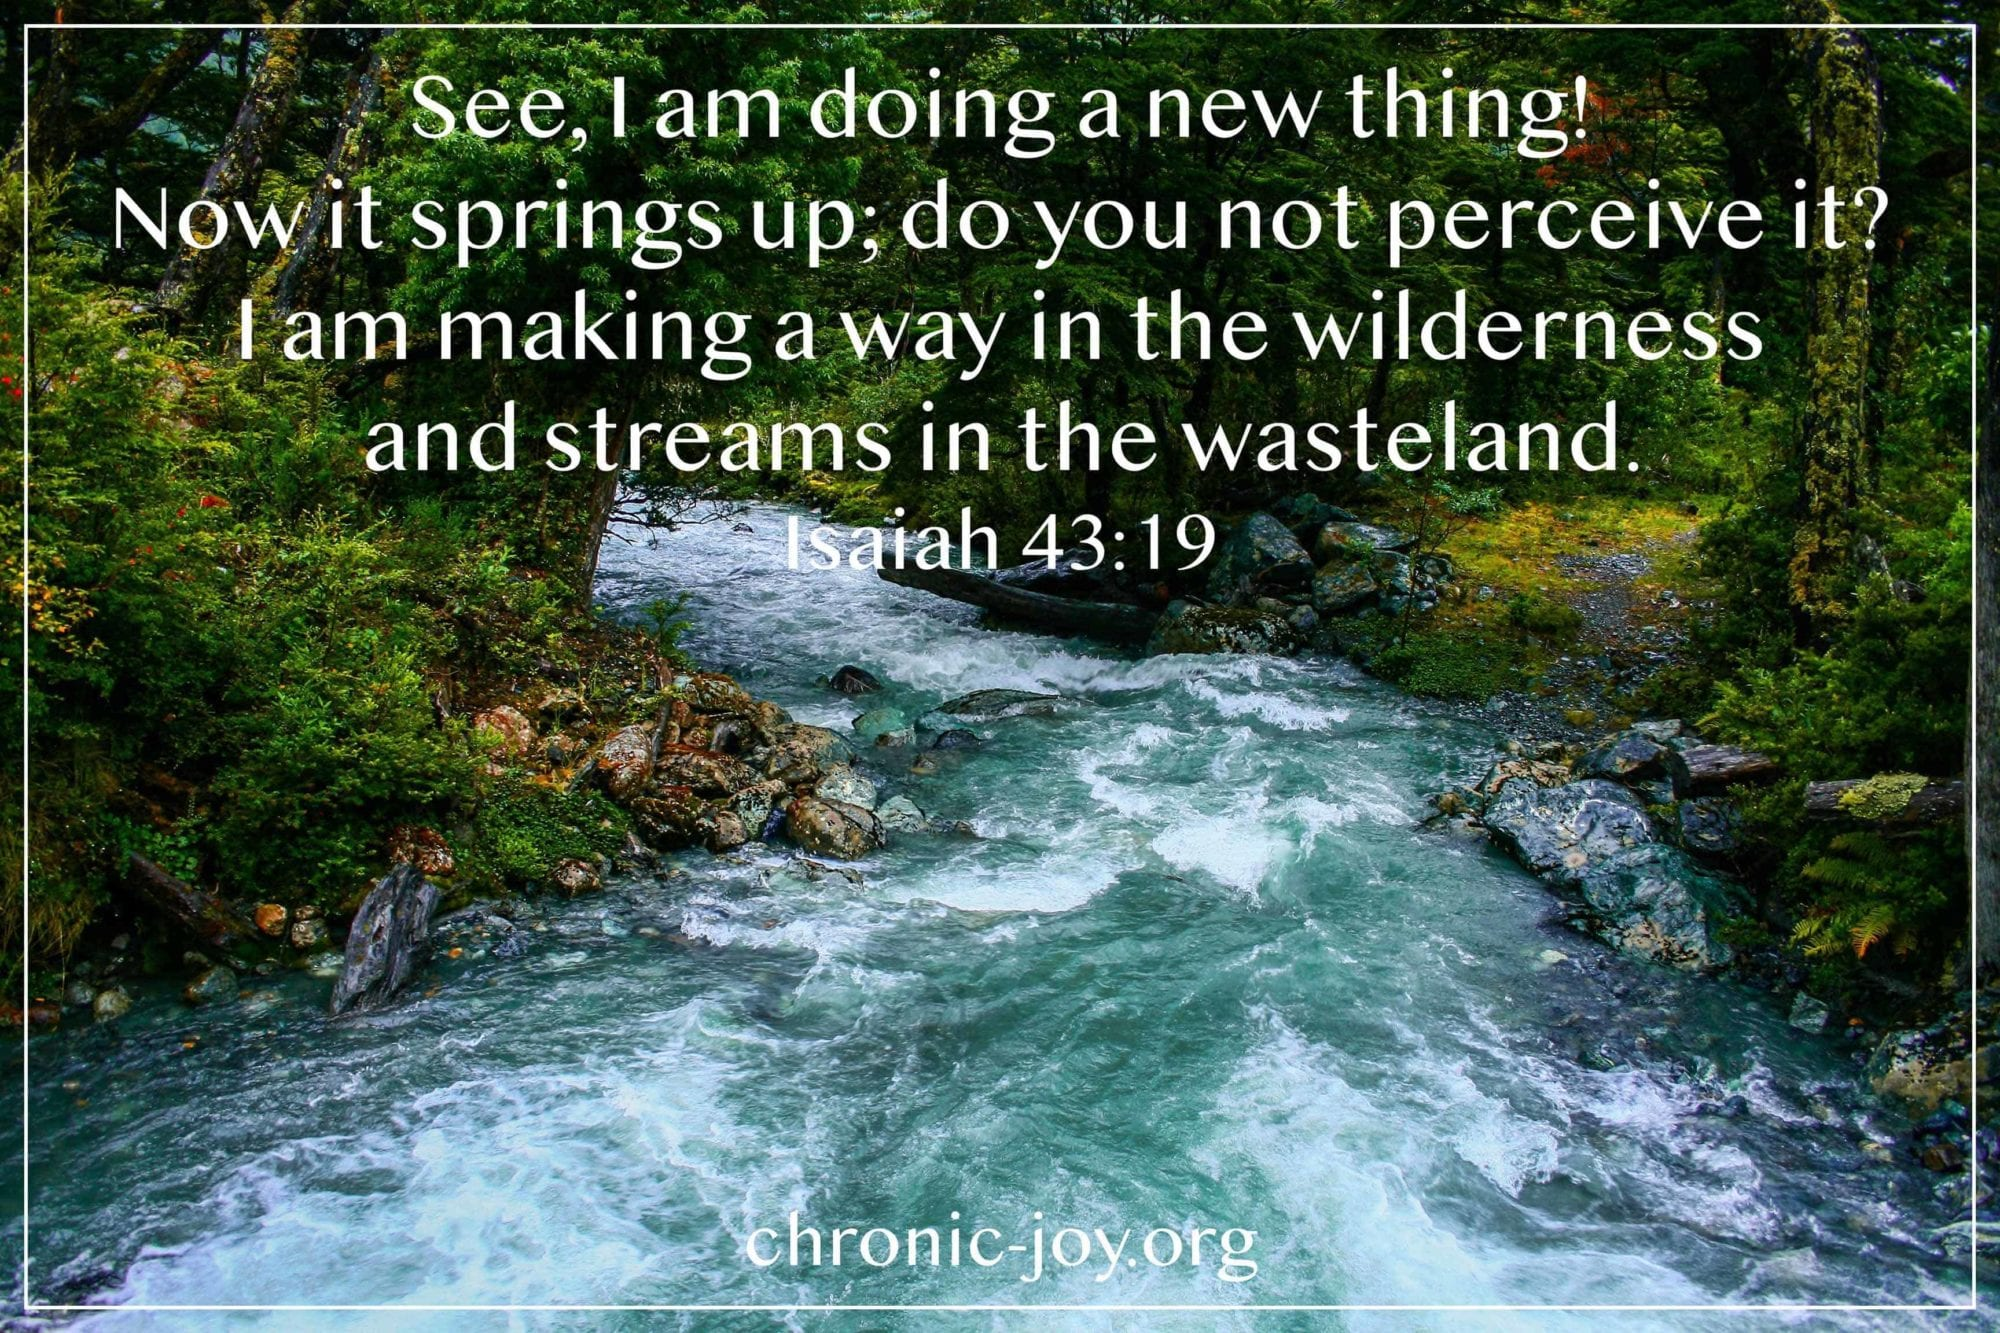 See, I am doing a new thing! Now it springs up, do you not perceive it? I am making a way in the wilderness and streams in the wasteland. (Isaiah 43:19)